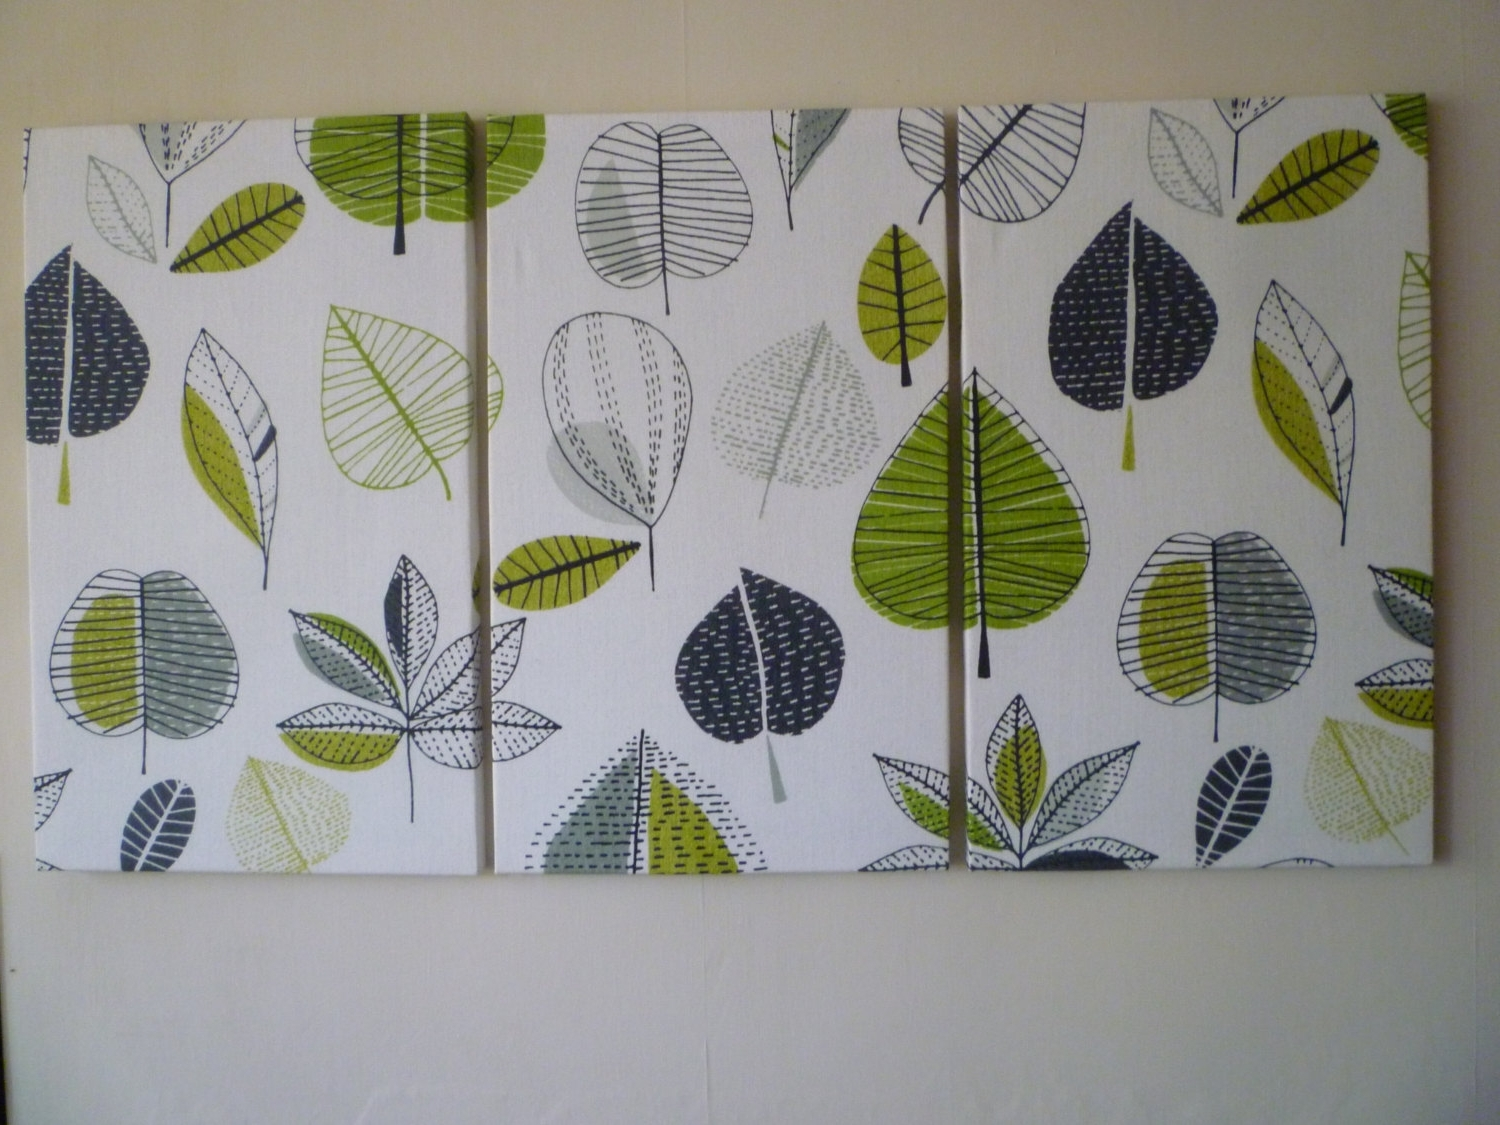 Wall Art Designs: Fabric Wall Art Big Lime Green Fabric Wall Art Pertaining To Popular Contemporary Fabric Wall Art (View 2 of 15)